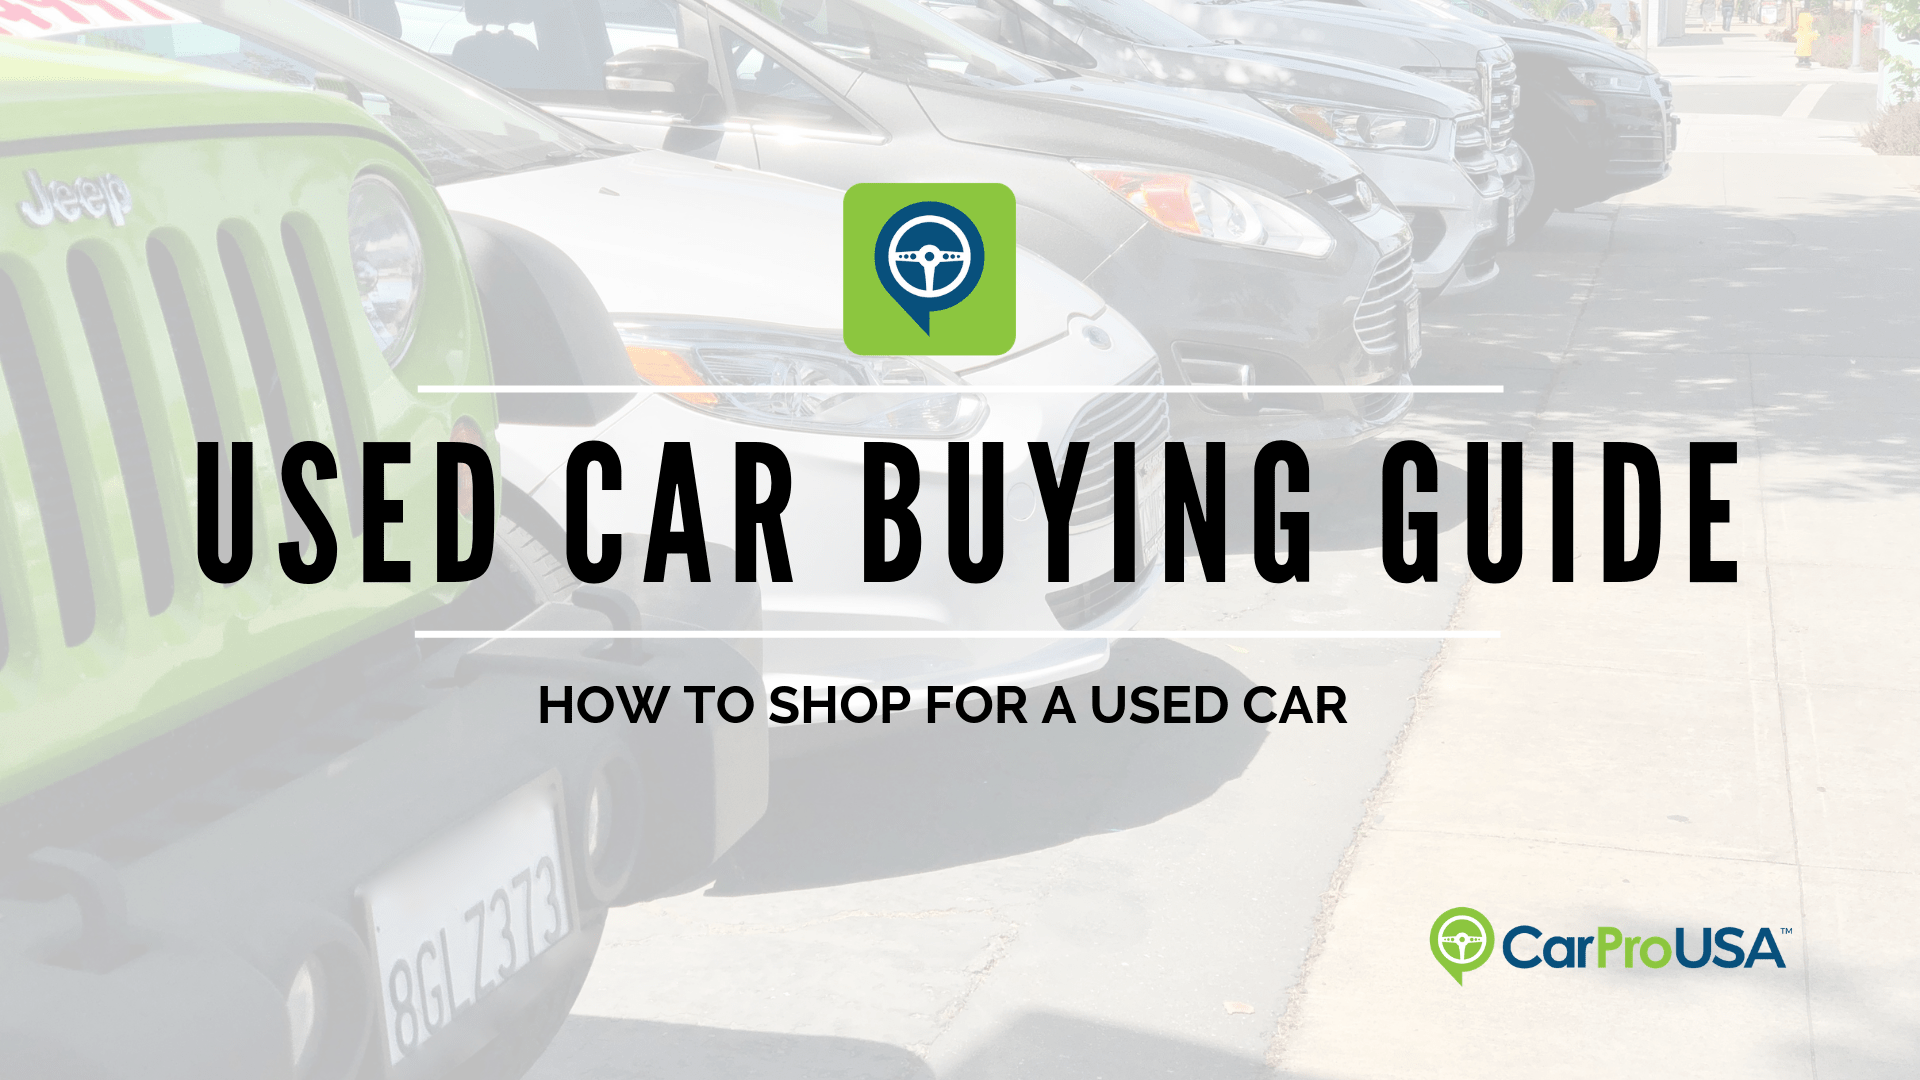 CarProUSA Used Car Buying Guide - How to shop for a used car.